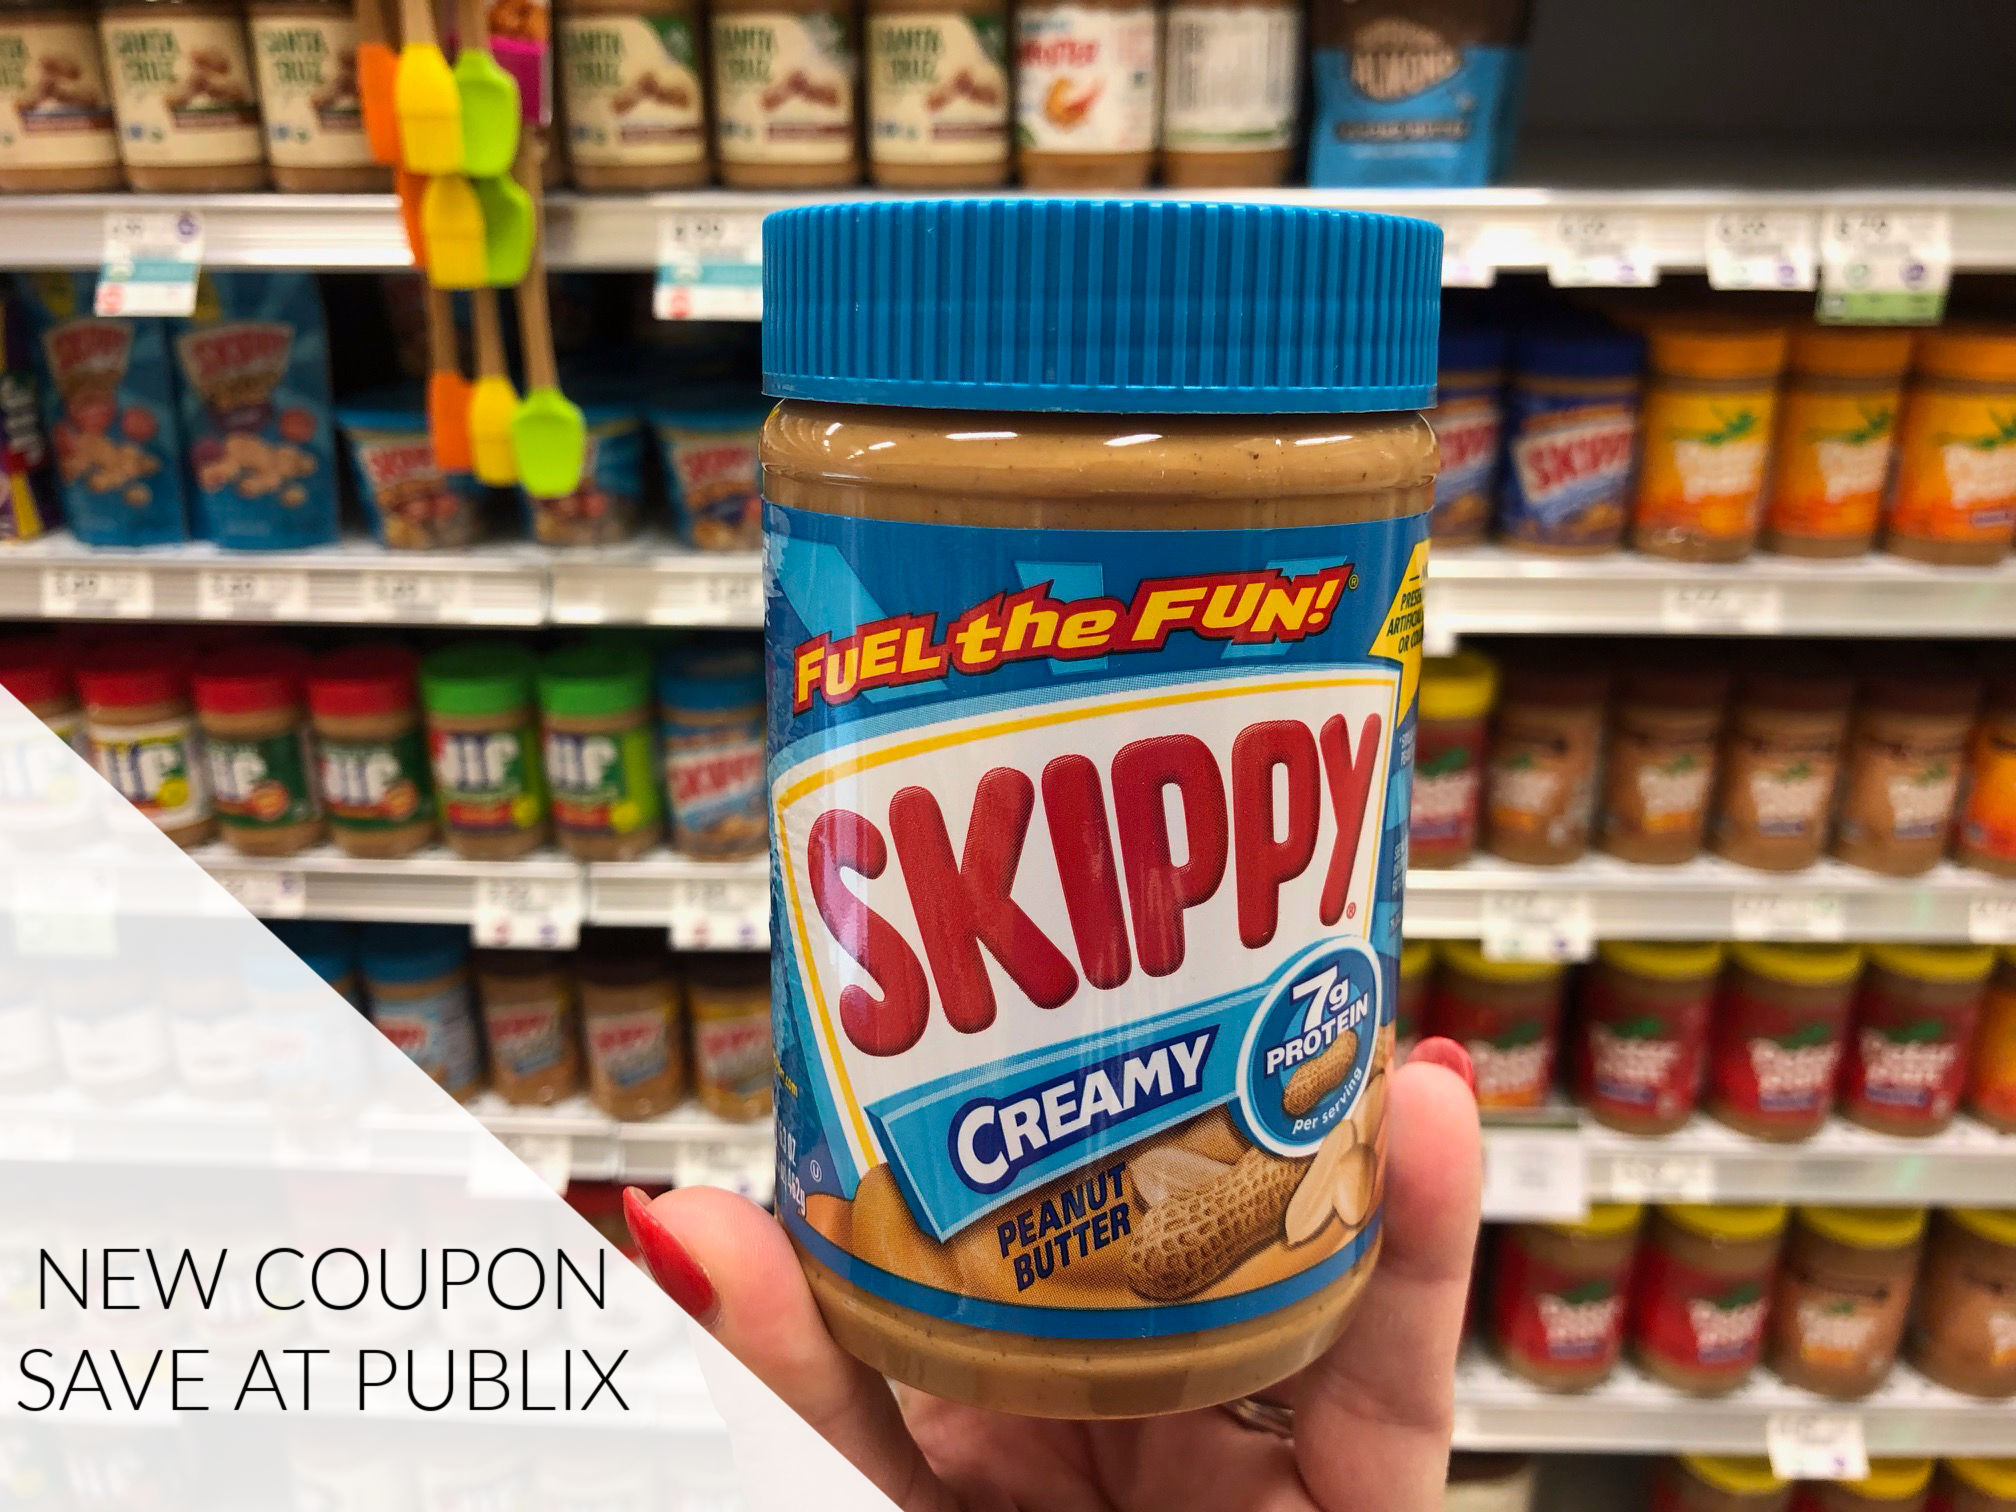 New Skippy Coupon - Save On Peanut Butter Or PB Bites on I Heart Publix